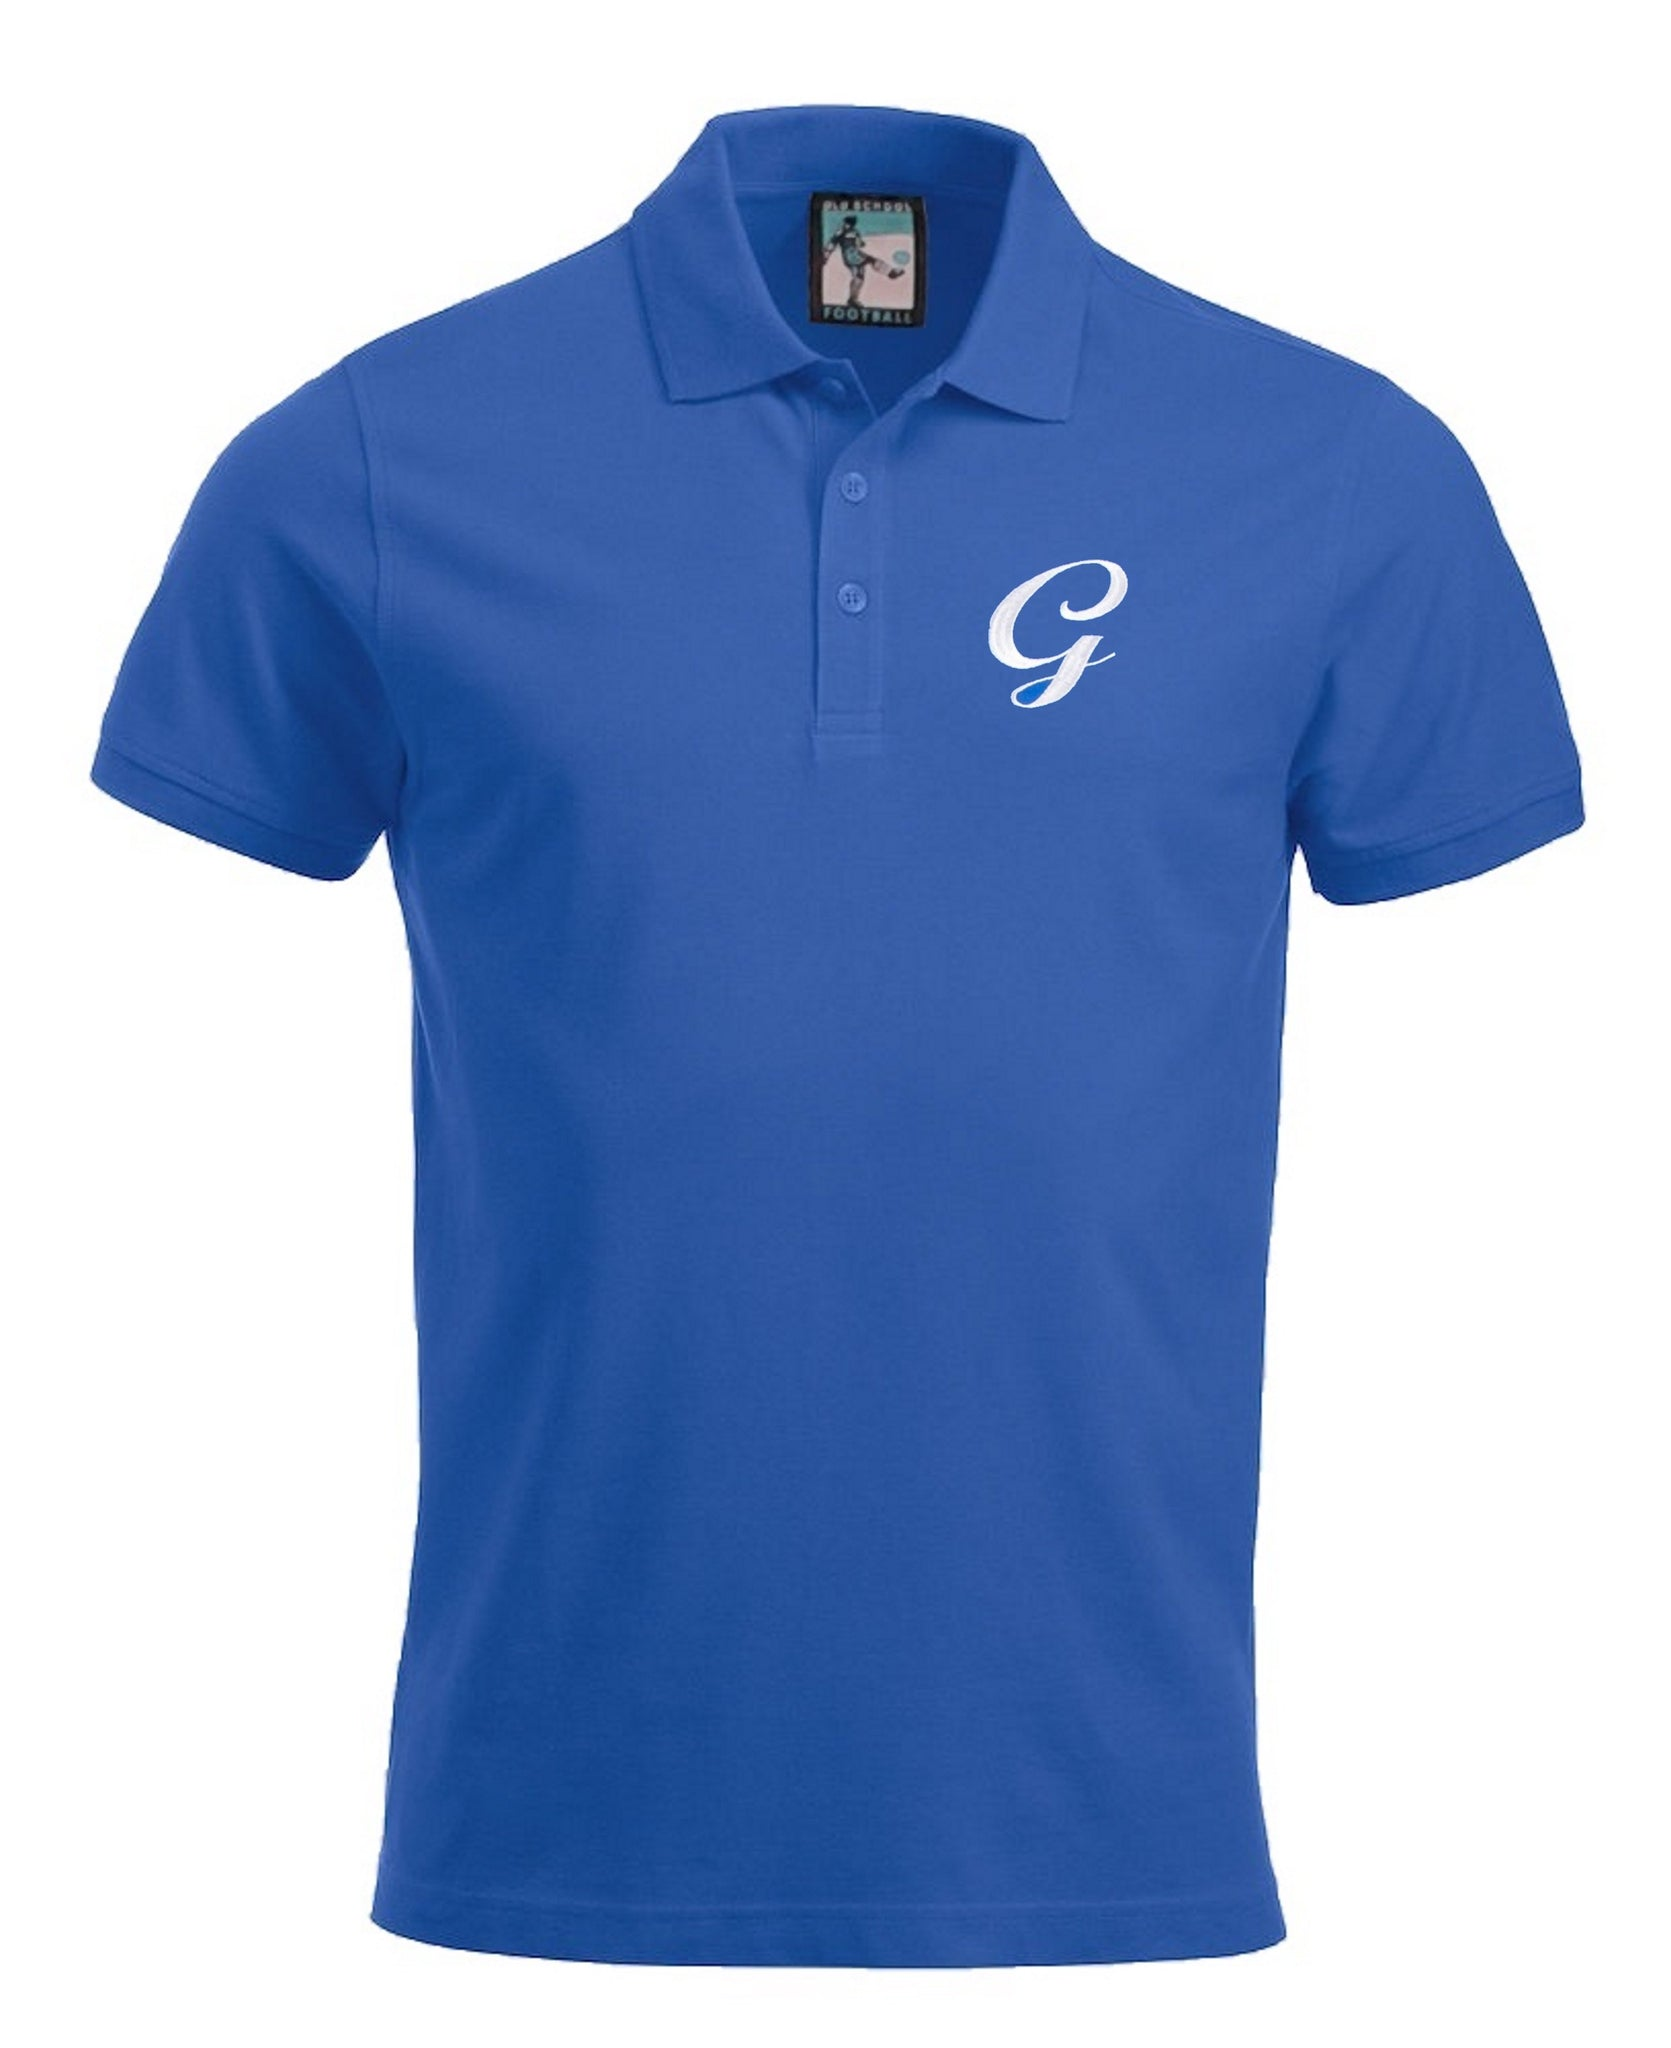 Gillingham Retro Football Polo Shirt 1972 - 1974 - Polo